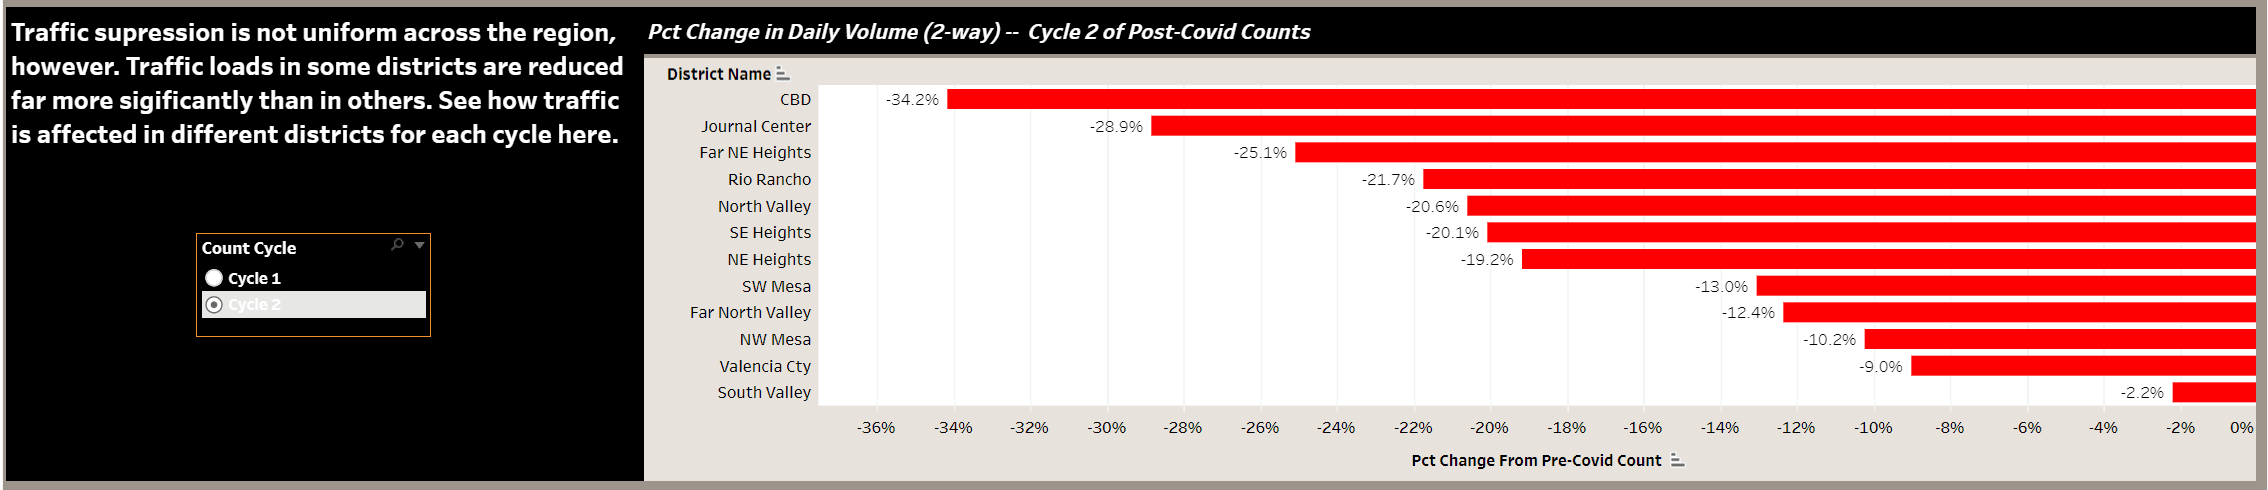 COVID Traffic Counts-Cycle 2 District Changes Histogram